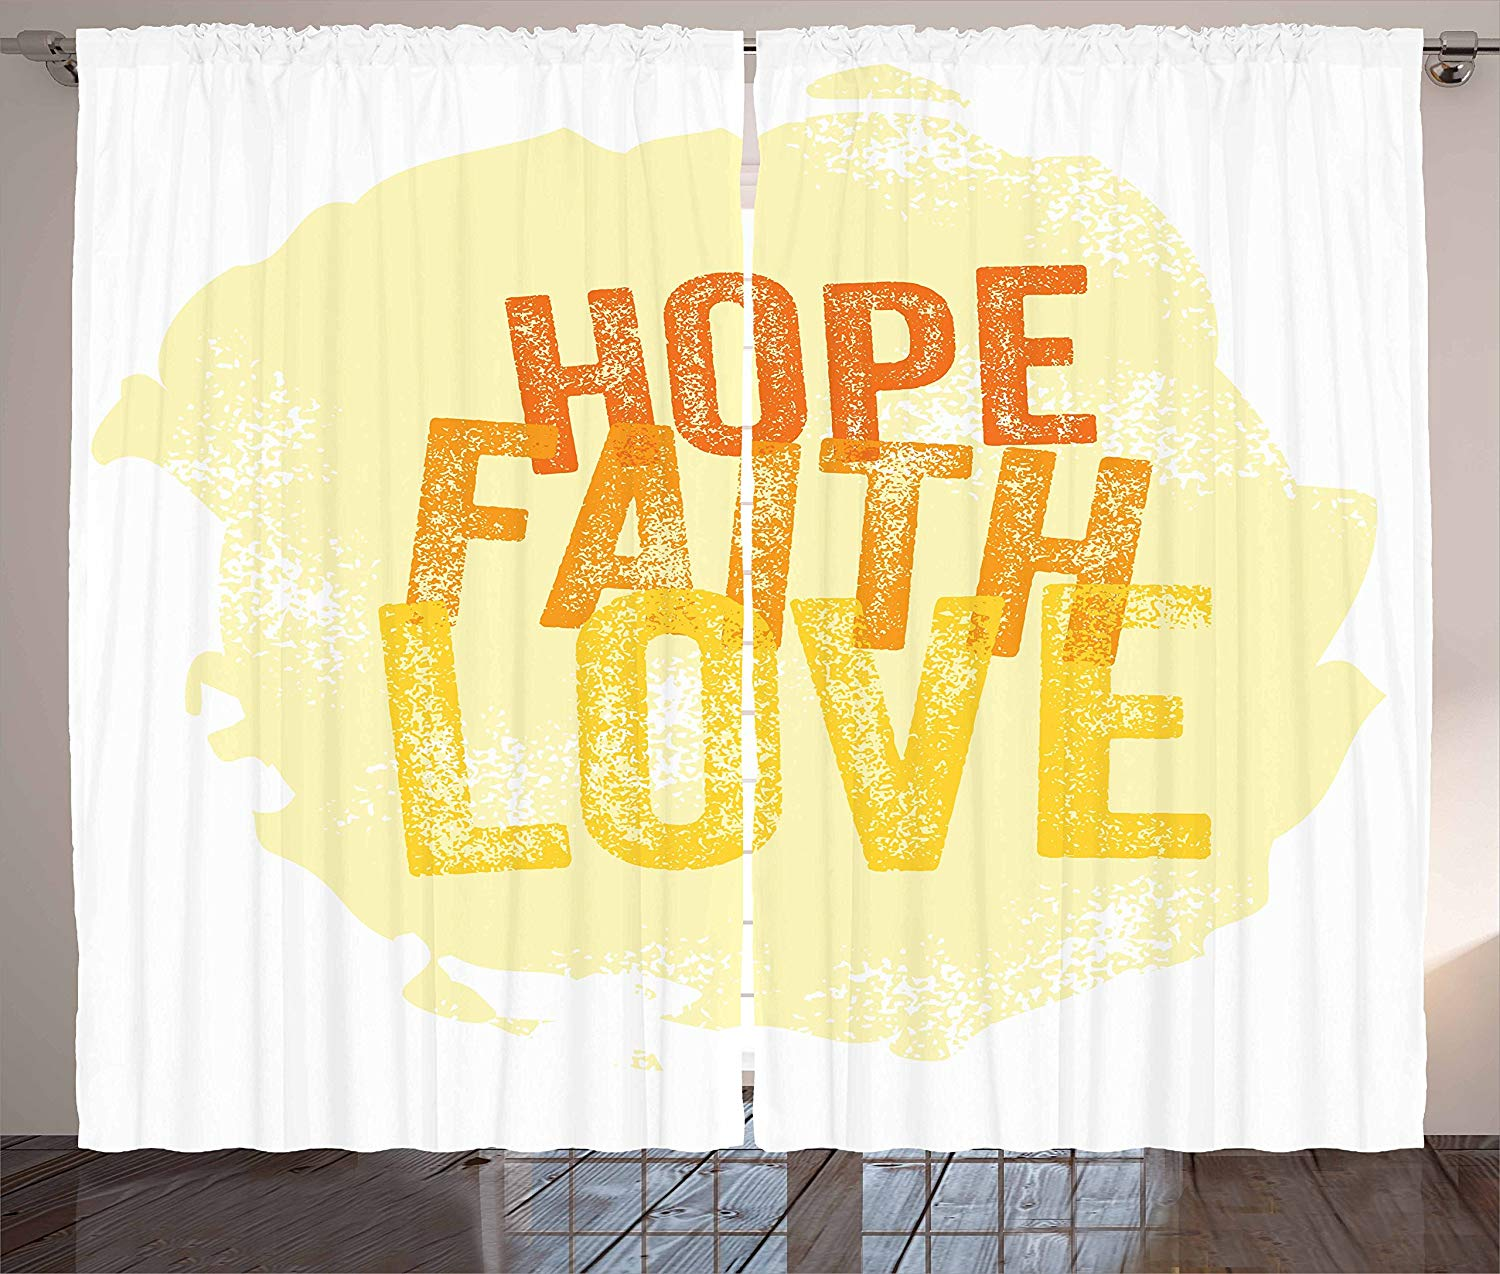 Hope Curtains Inspirational Religious Hope Faith Love Quote With Grunge Letters Living Room Bedroom Window Drapes Orange Yellow